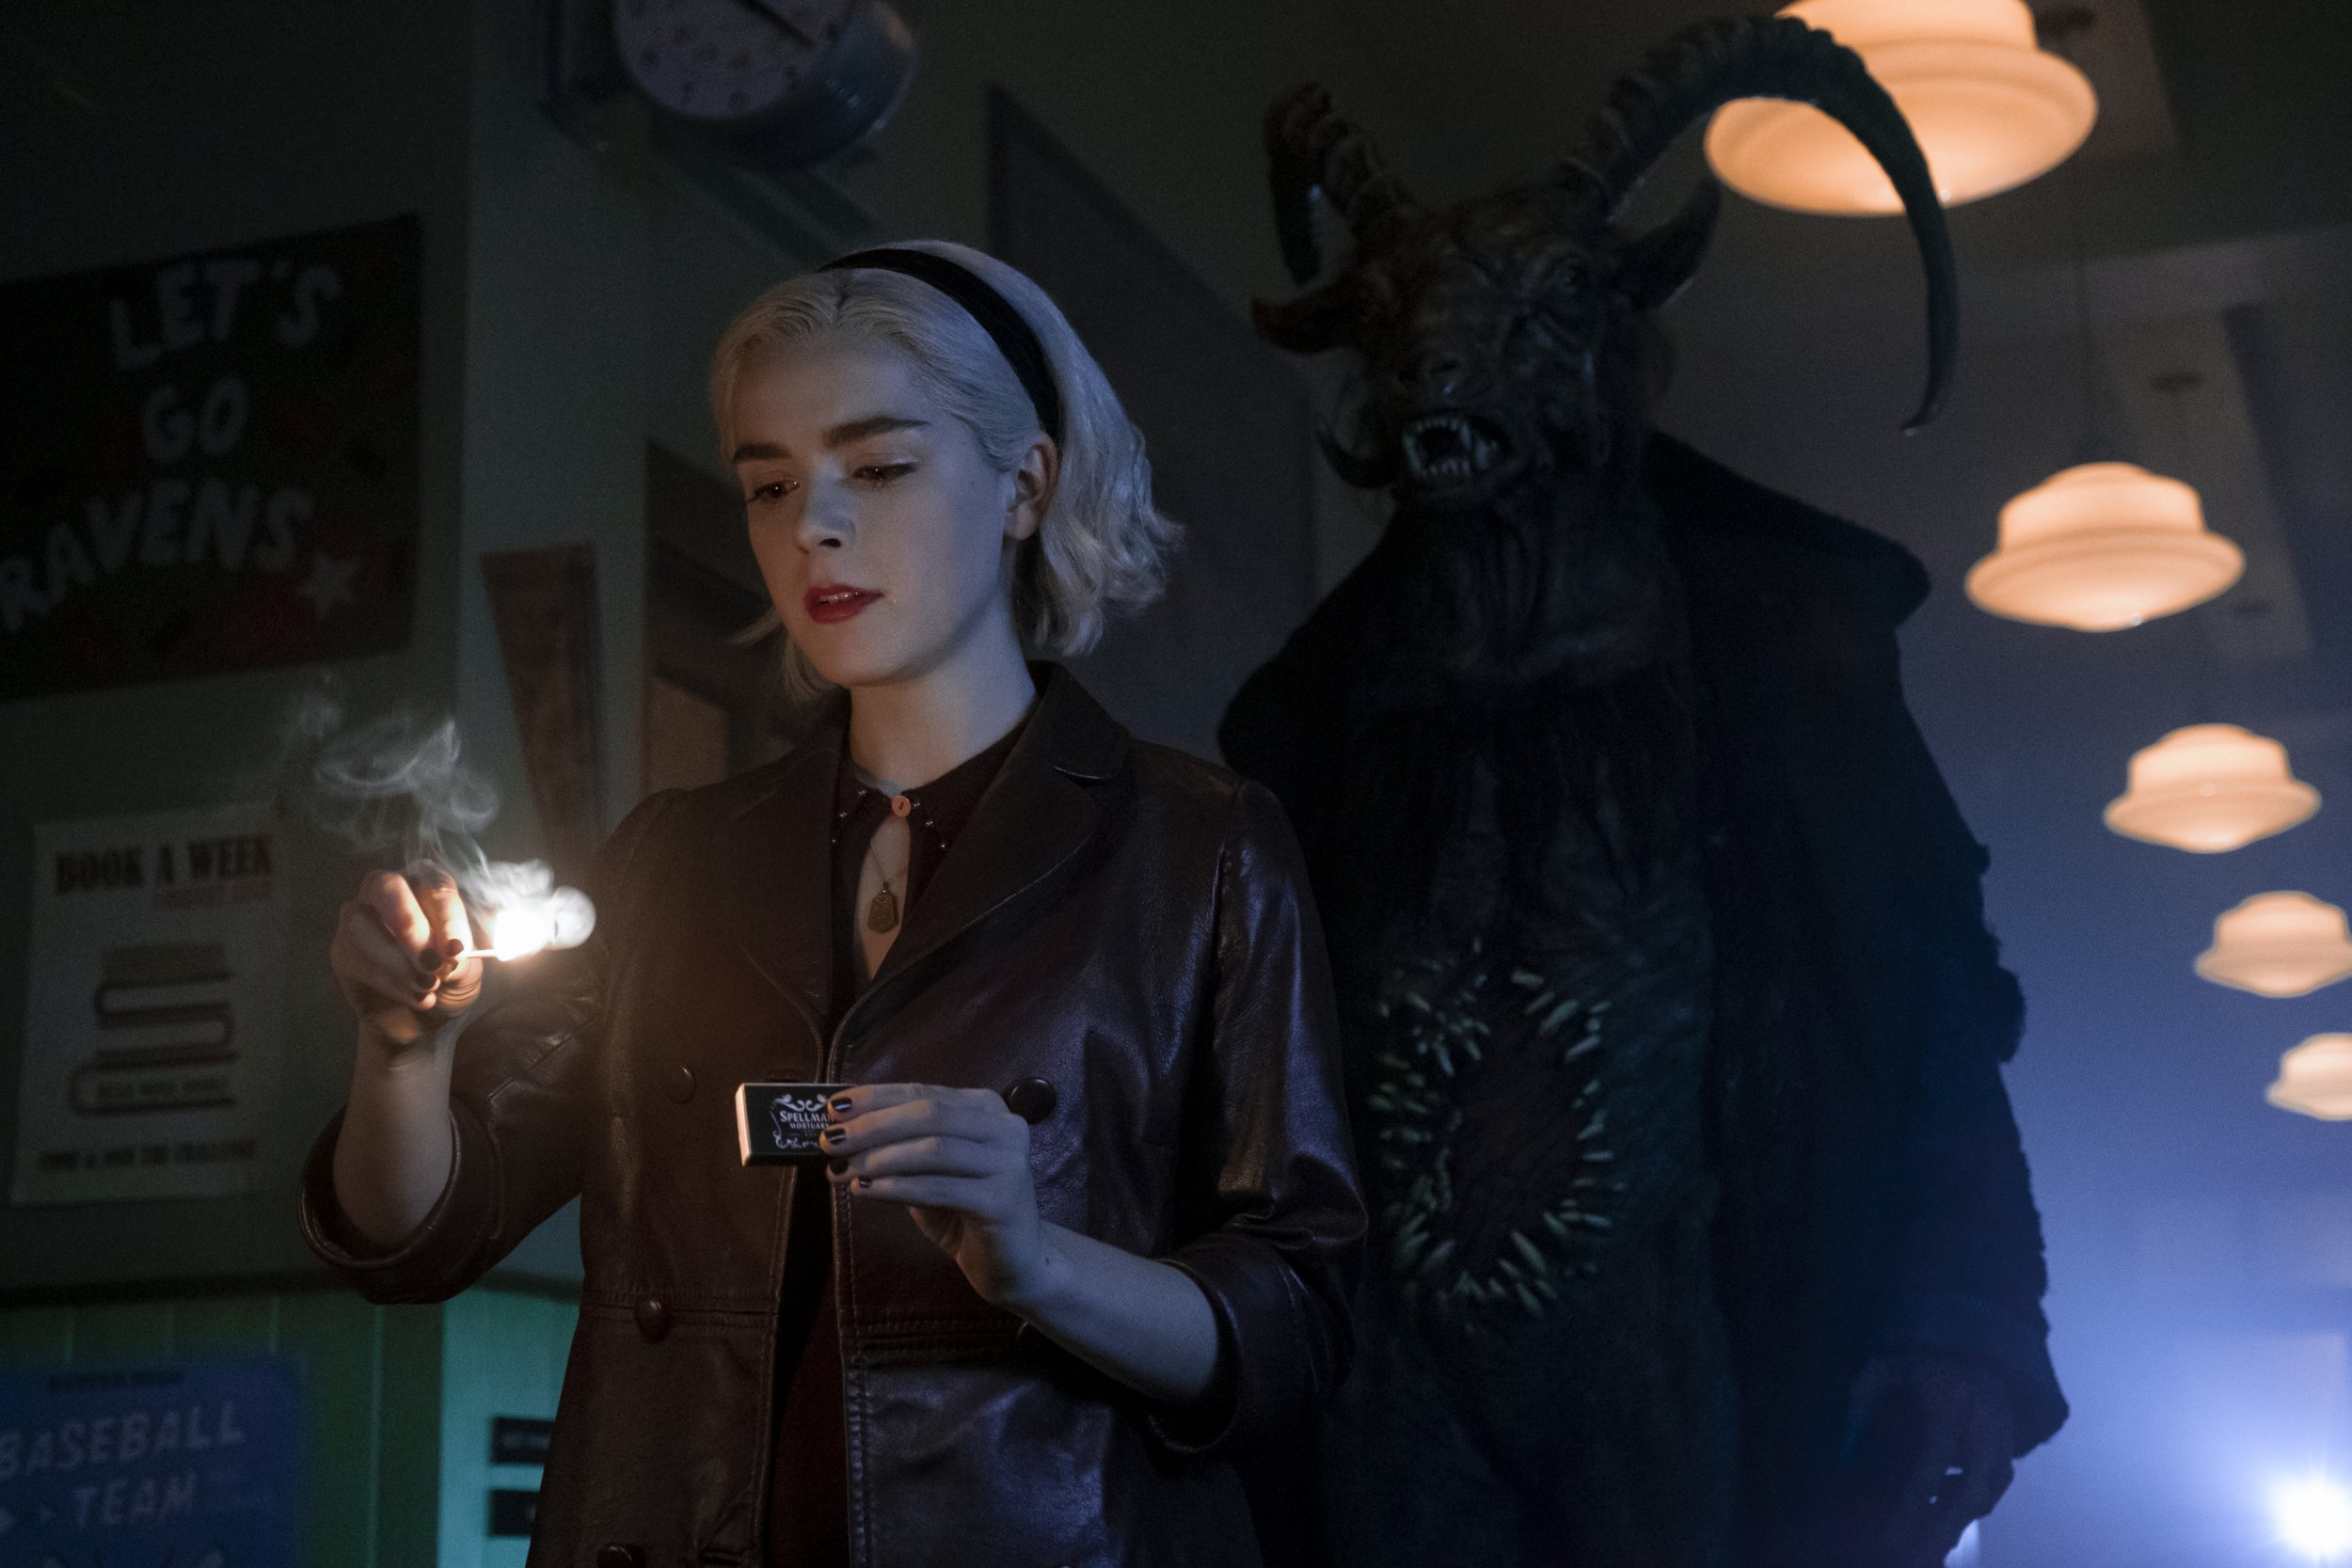 New 'Chilling Adventures of Sabrina' Trailer